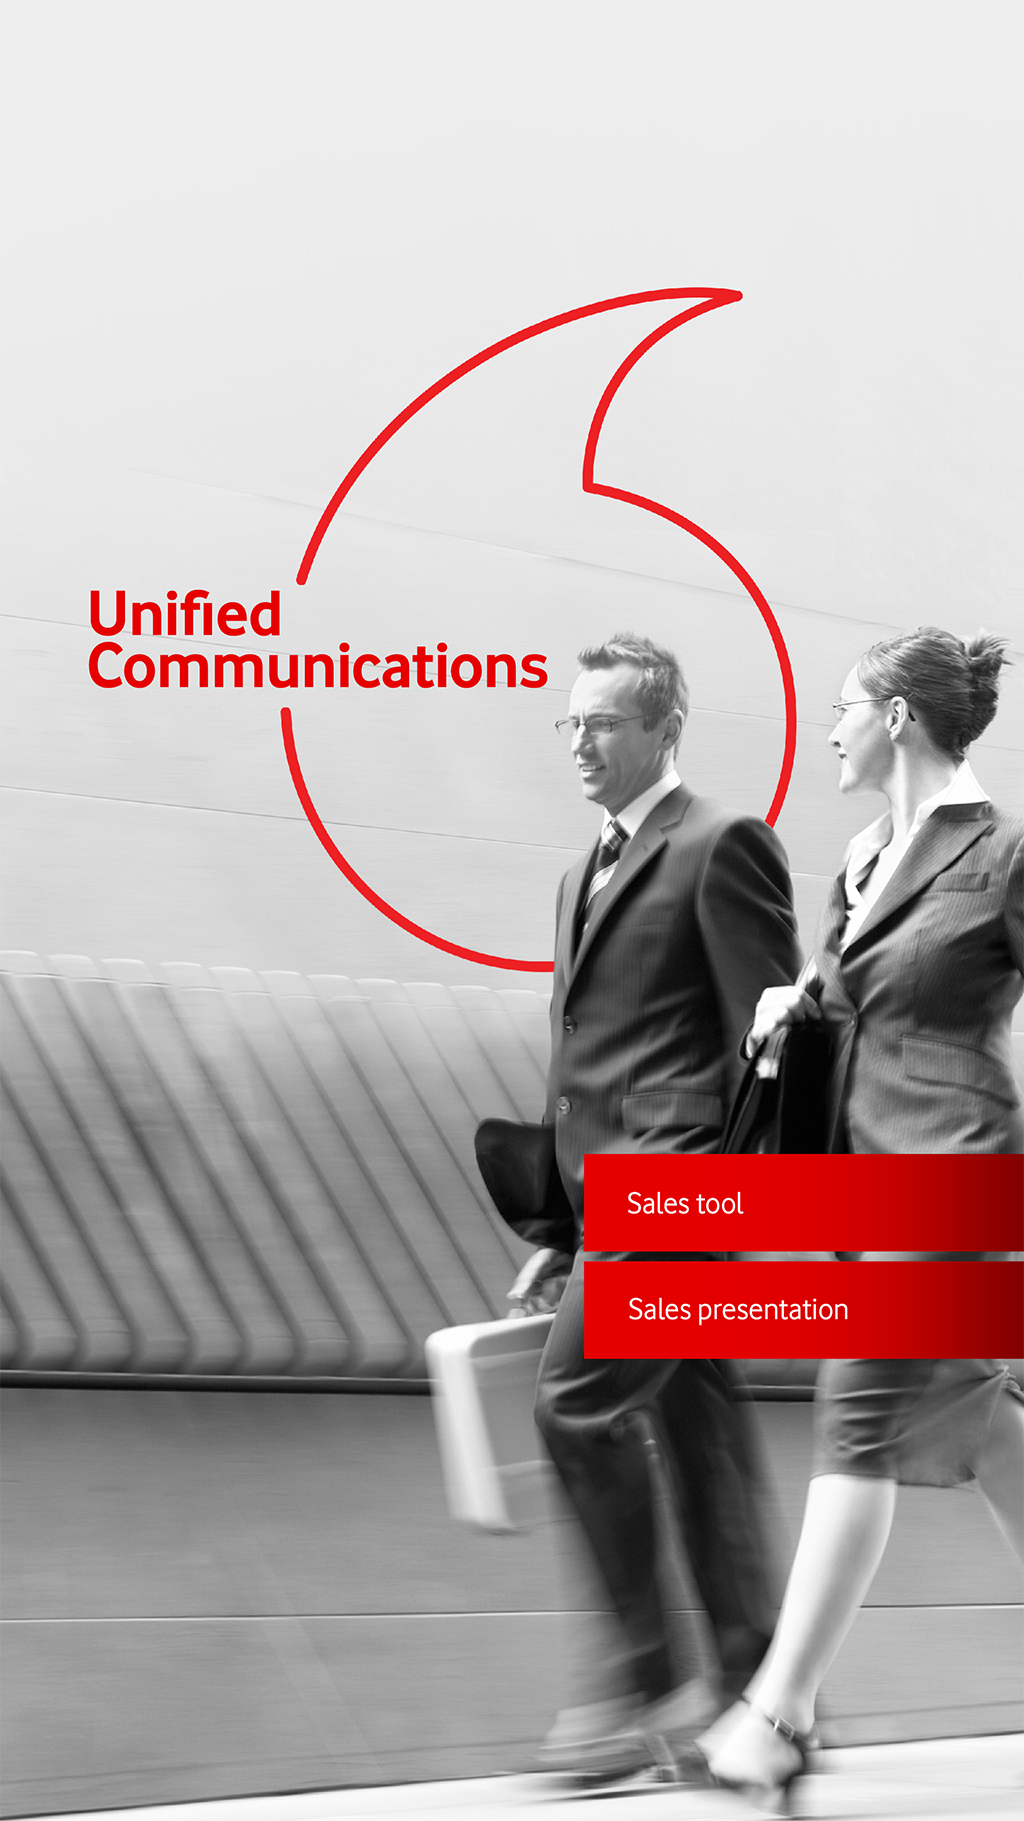 07.-Ready-Govt---Unified-Communications-1